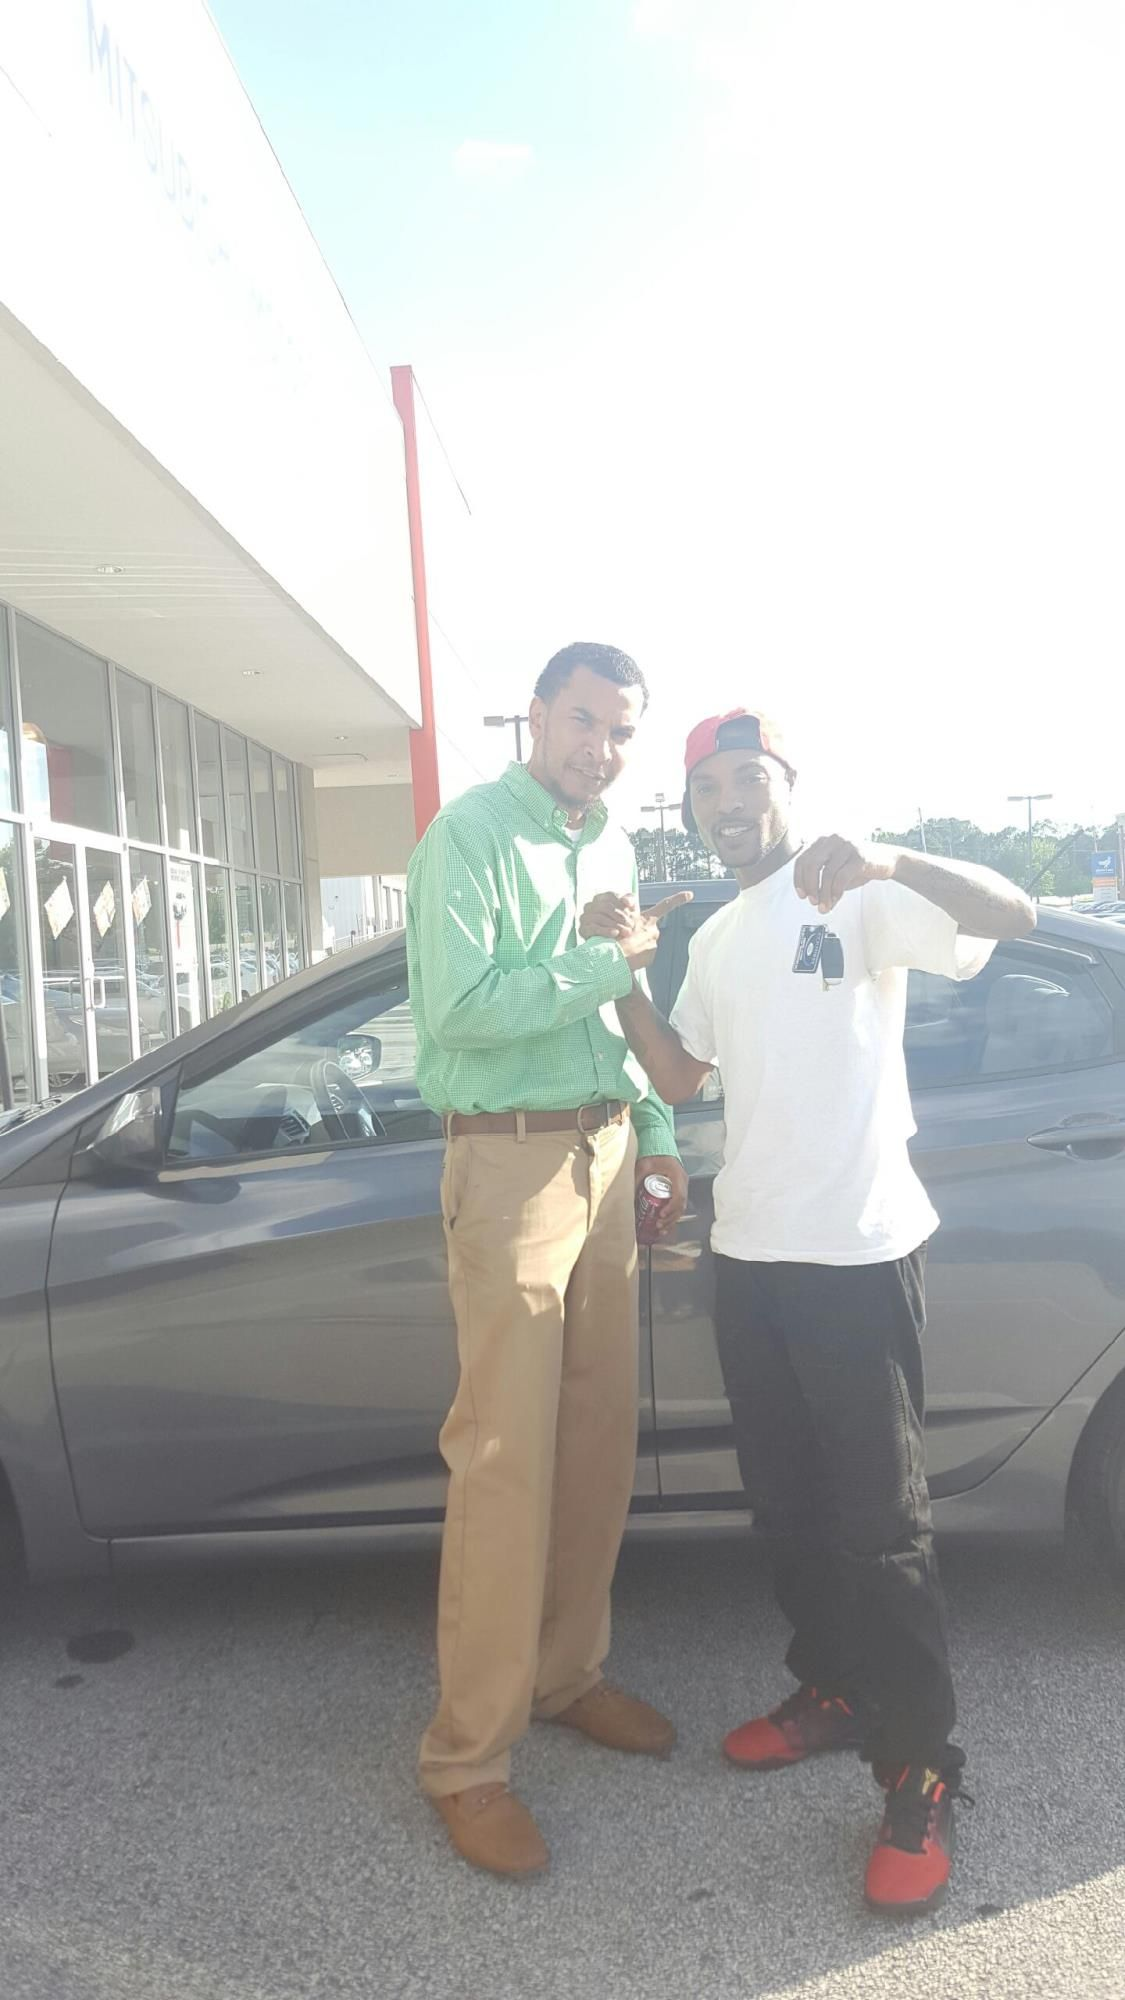 Shawn Smith reviews the 2013 Hyundai Elantra he purchased from